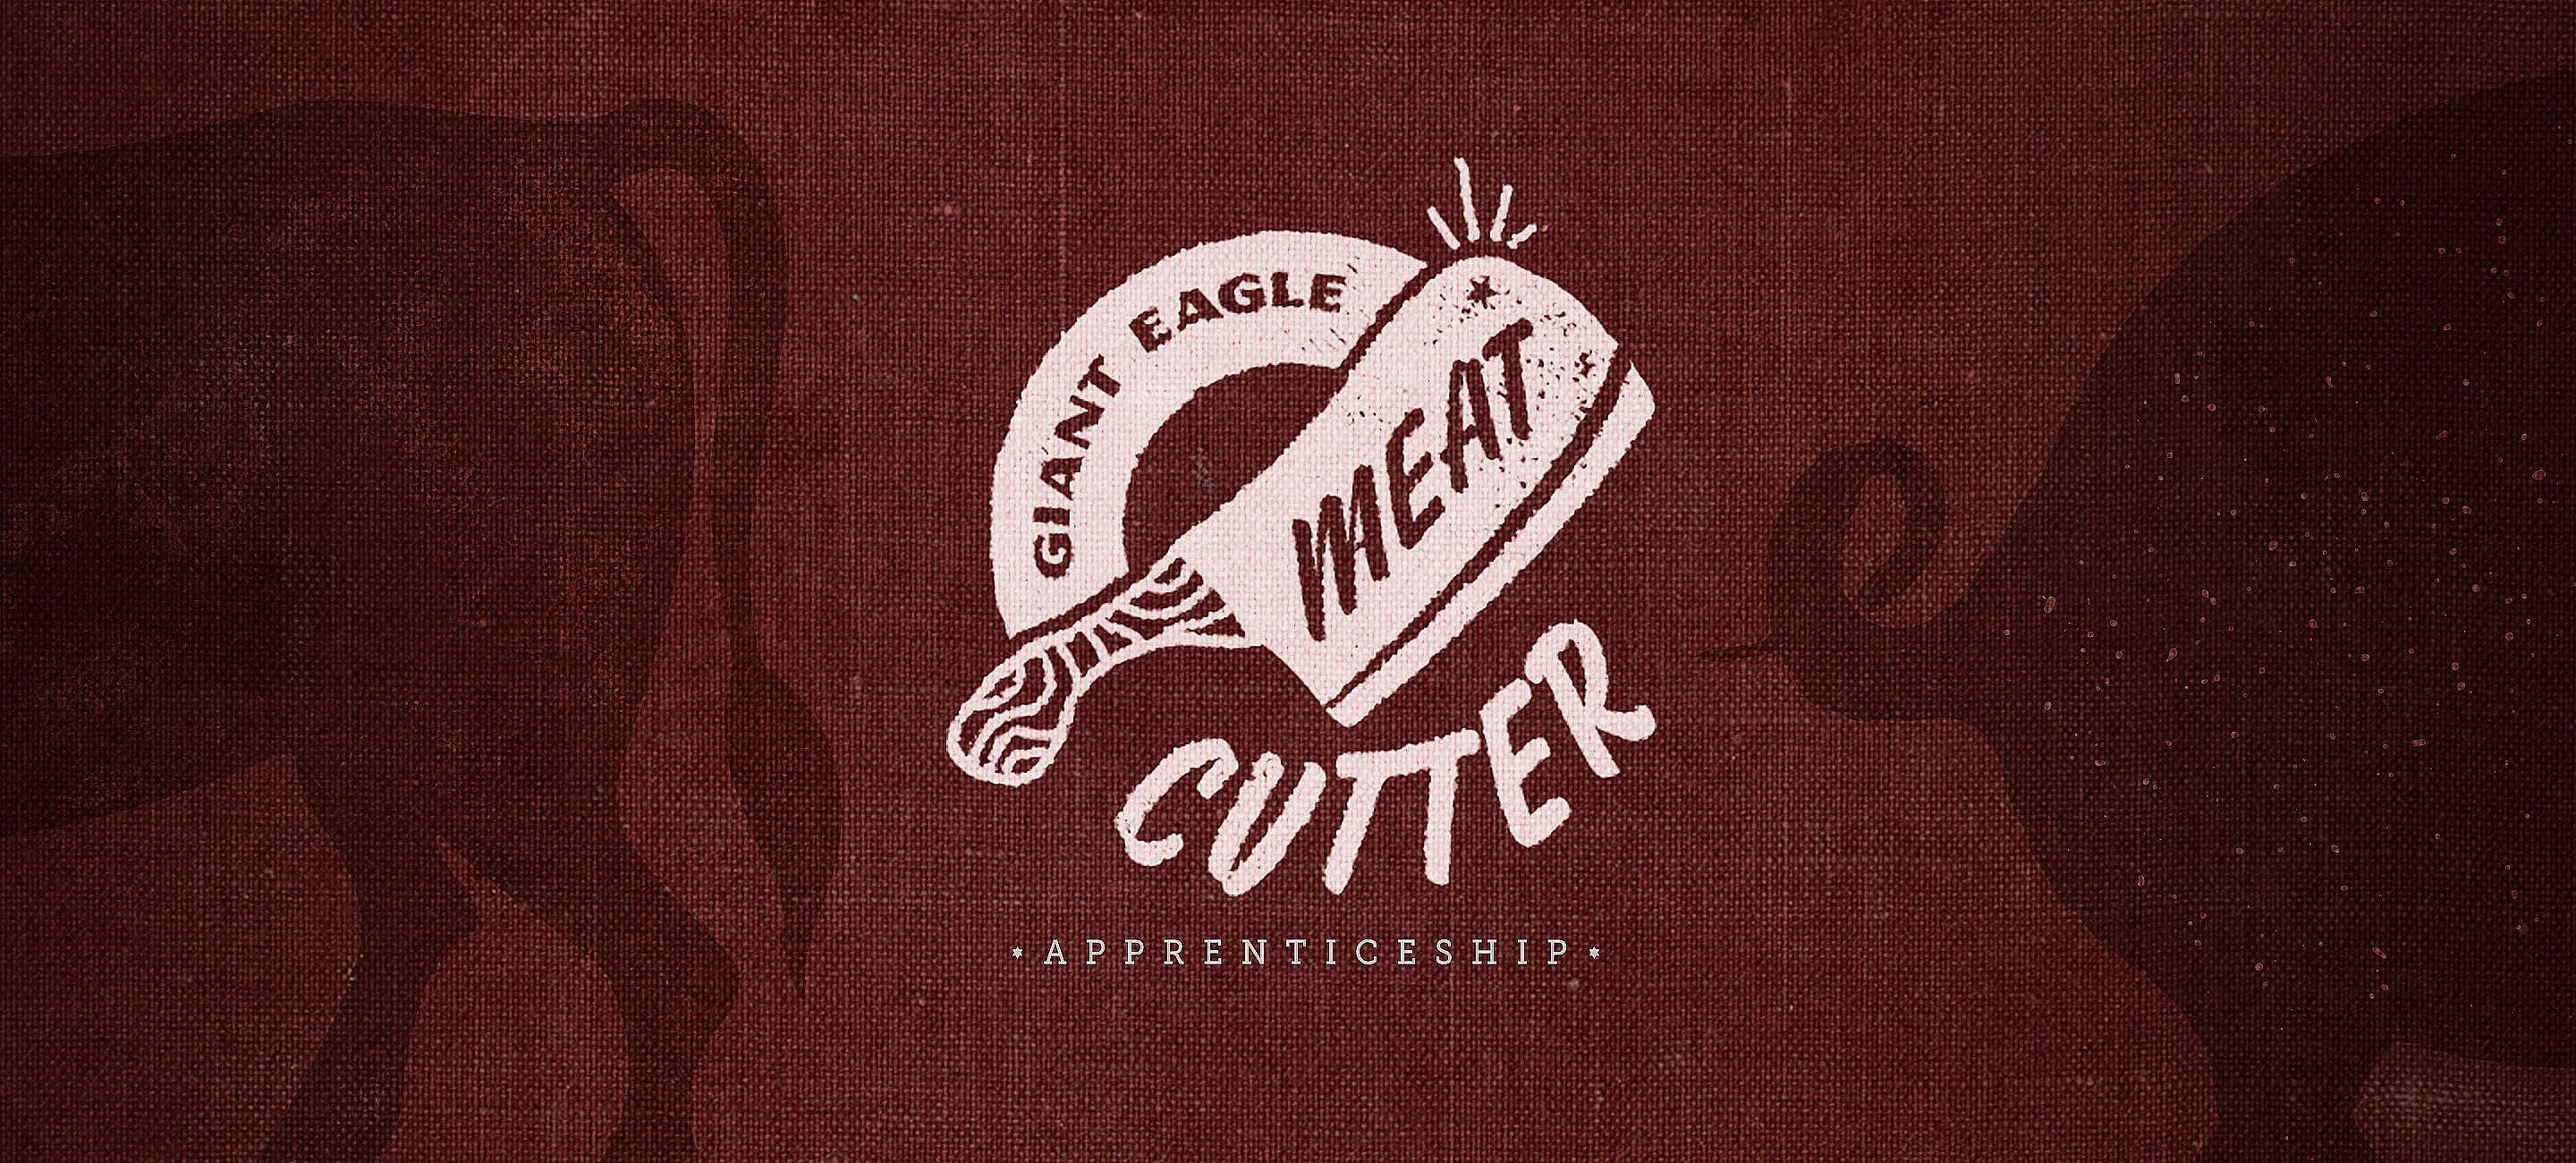 Giant-Eagle-Meat-Cutter-Logo-Red